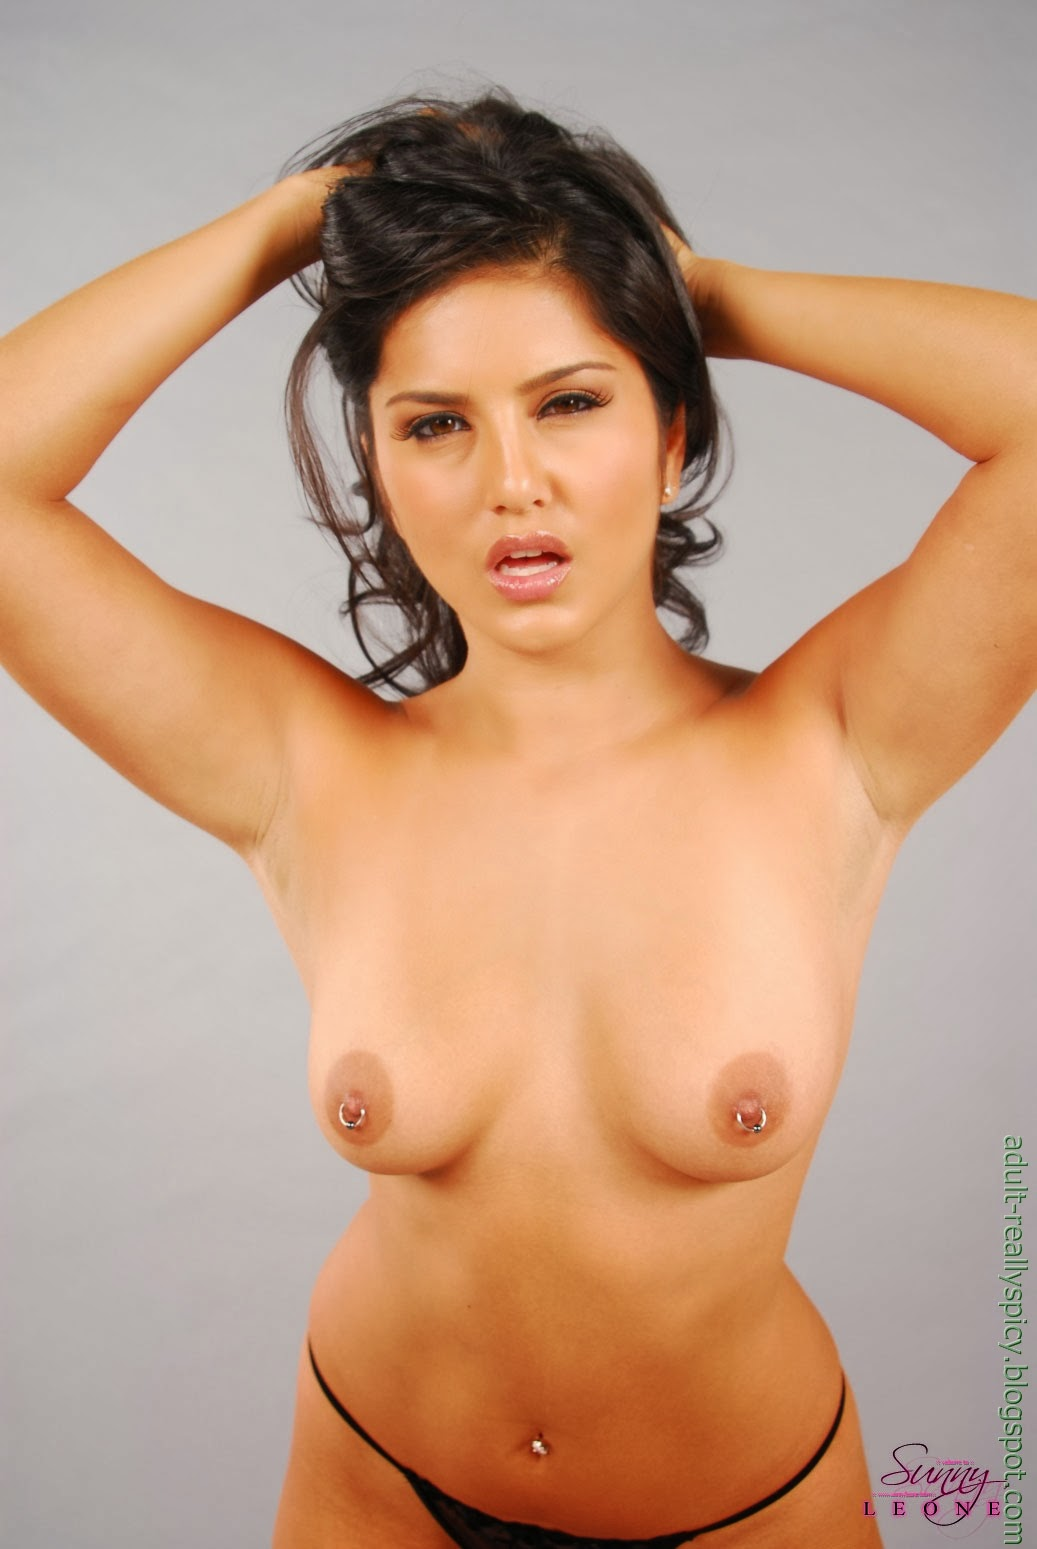 Porn Photos Of Sunny Leone